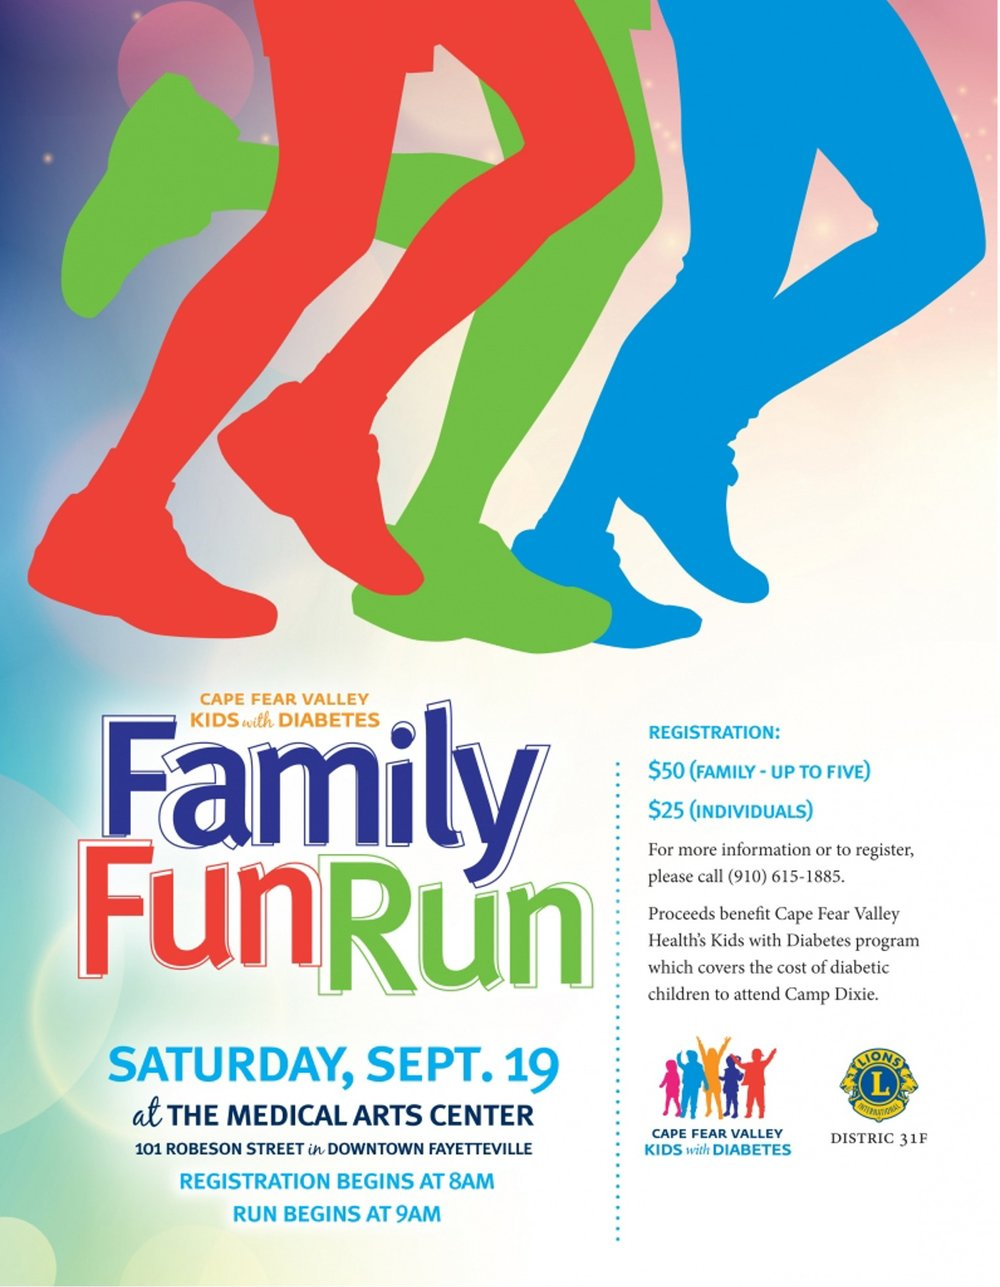 Unit F3: Family Fun Run -